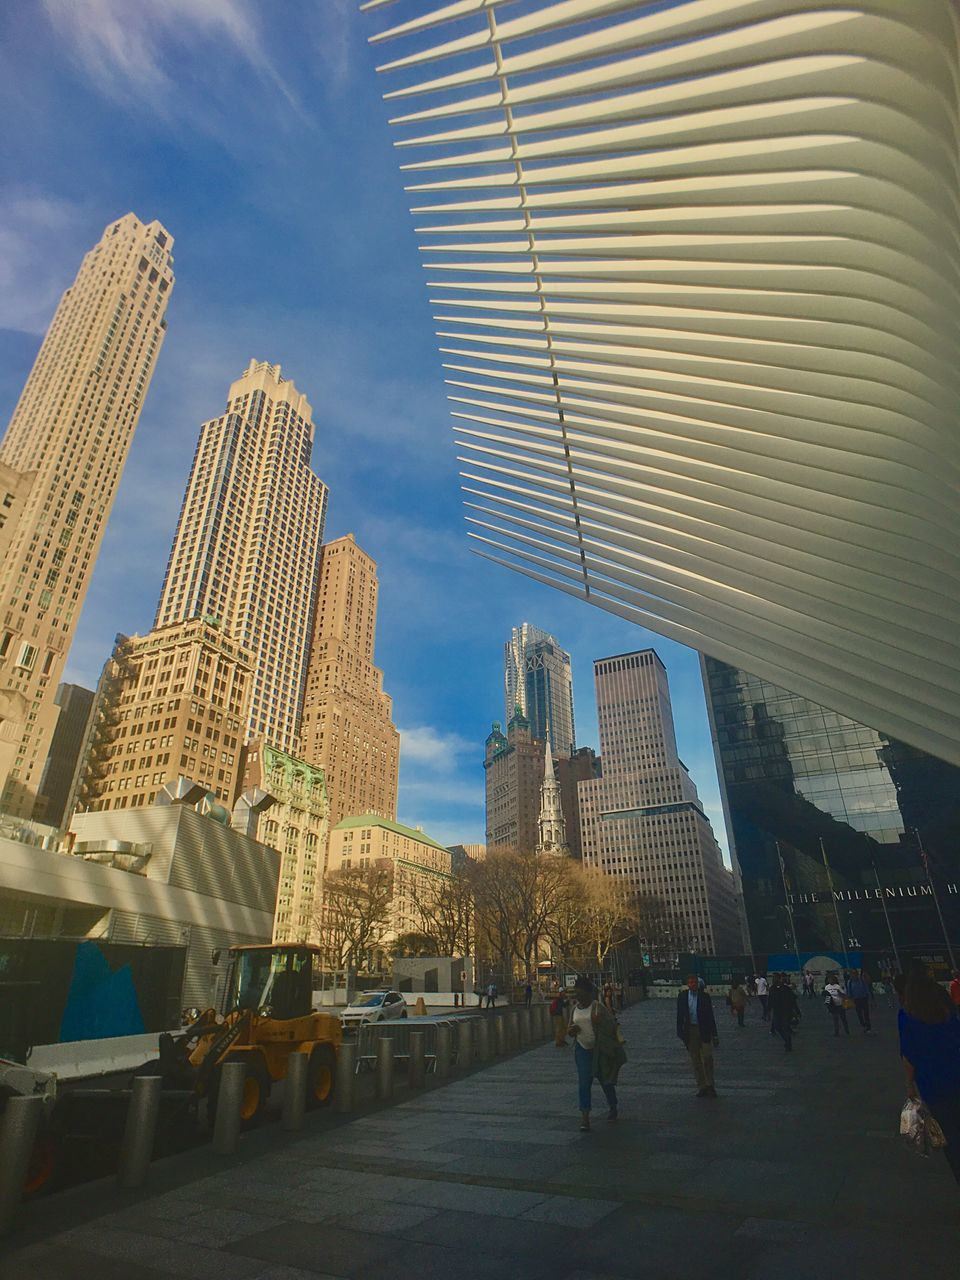 architecture, built structure, building exterior, skyscraper, modern, city, sky, travel destinations, travel, outdoors, day, real people, urban skyline, cityscape